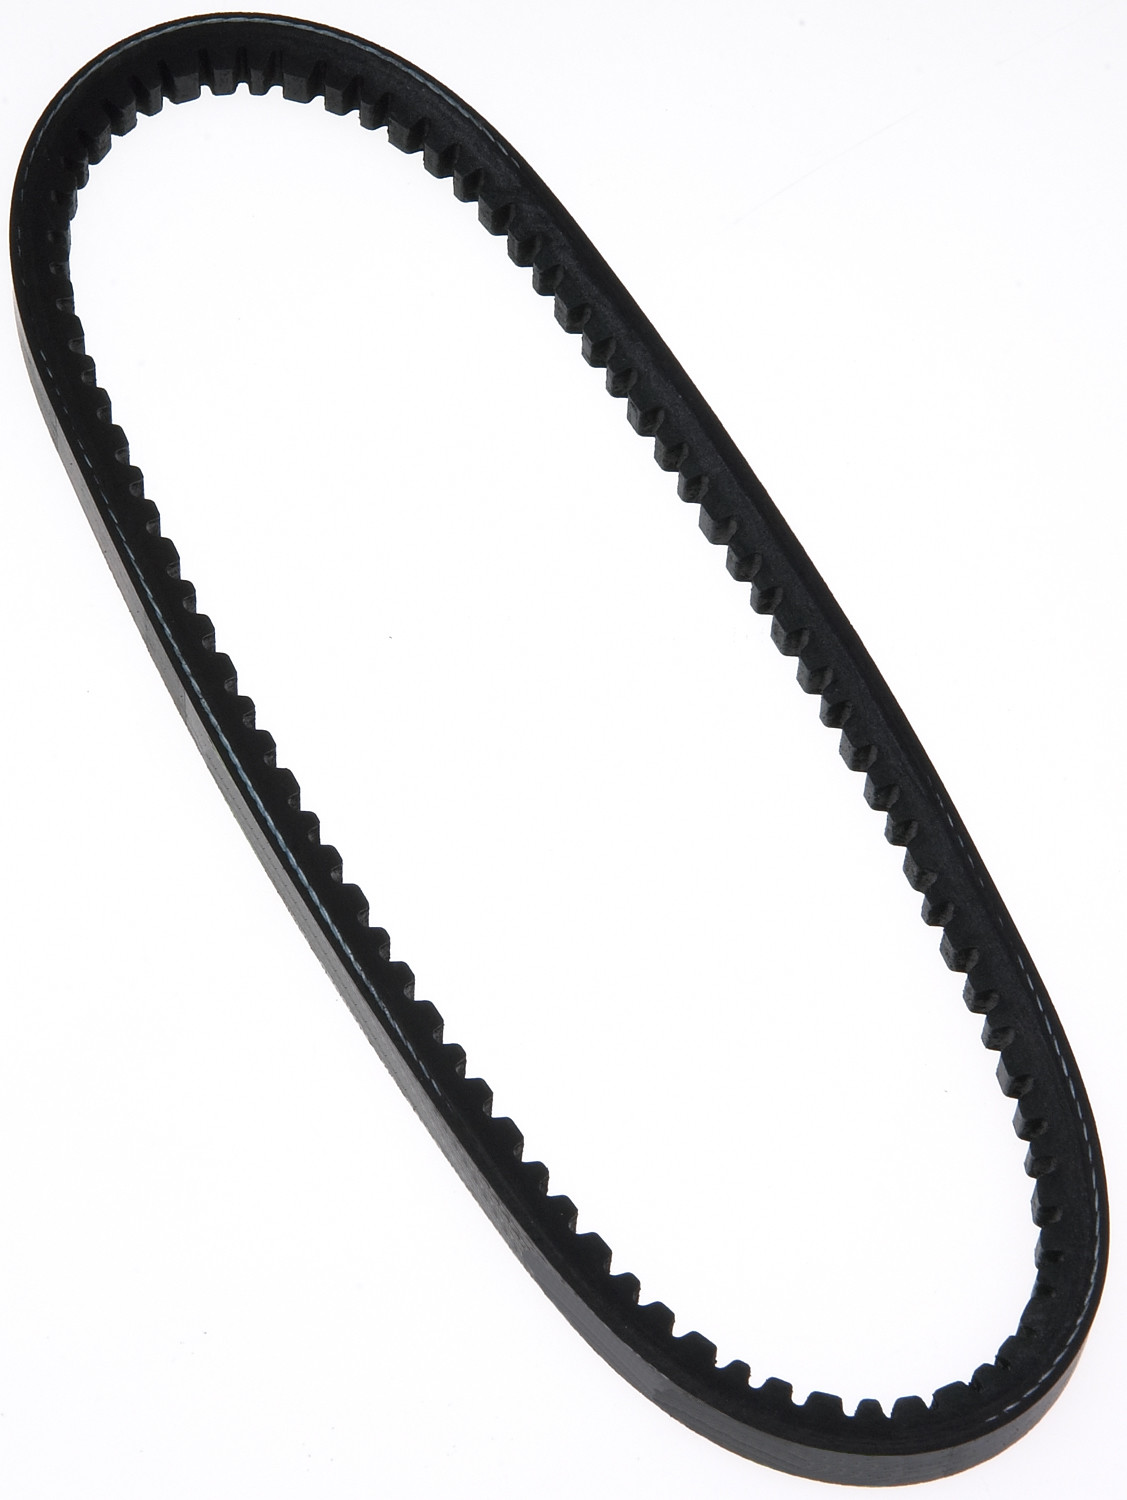 ROADMAX - High Capacity V-belt(standard) - RMX 17540AP